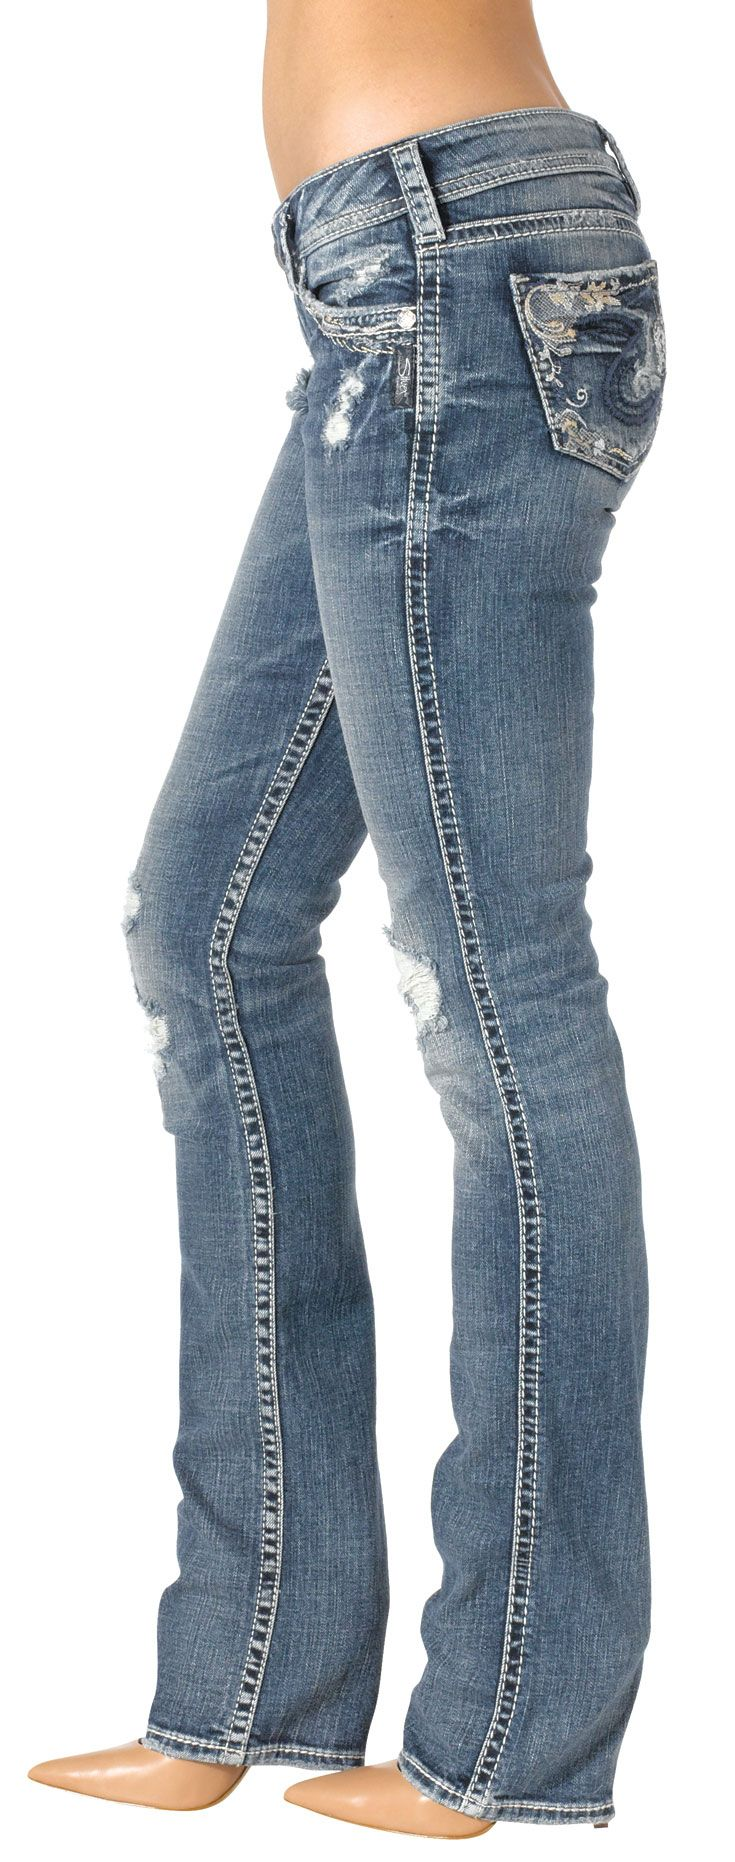 Silver Jeans Tuesday Low Baby Bootcut  --------------------- Besides BKE, I love Silver Jeans. I only have one pair right now and it is a very dark denim. I would like to have something lighter like this pair